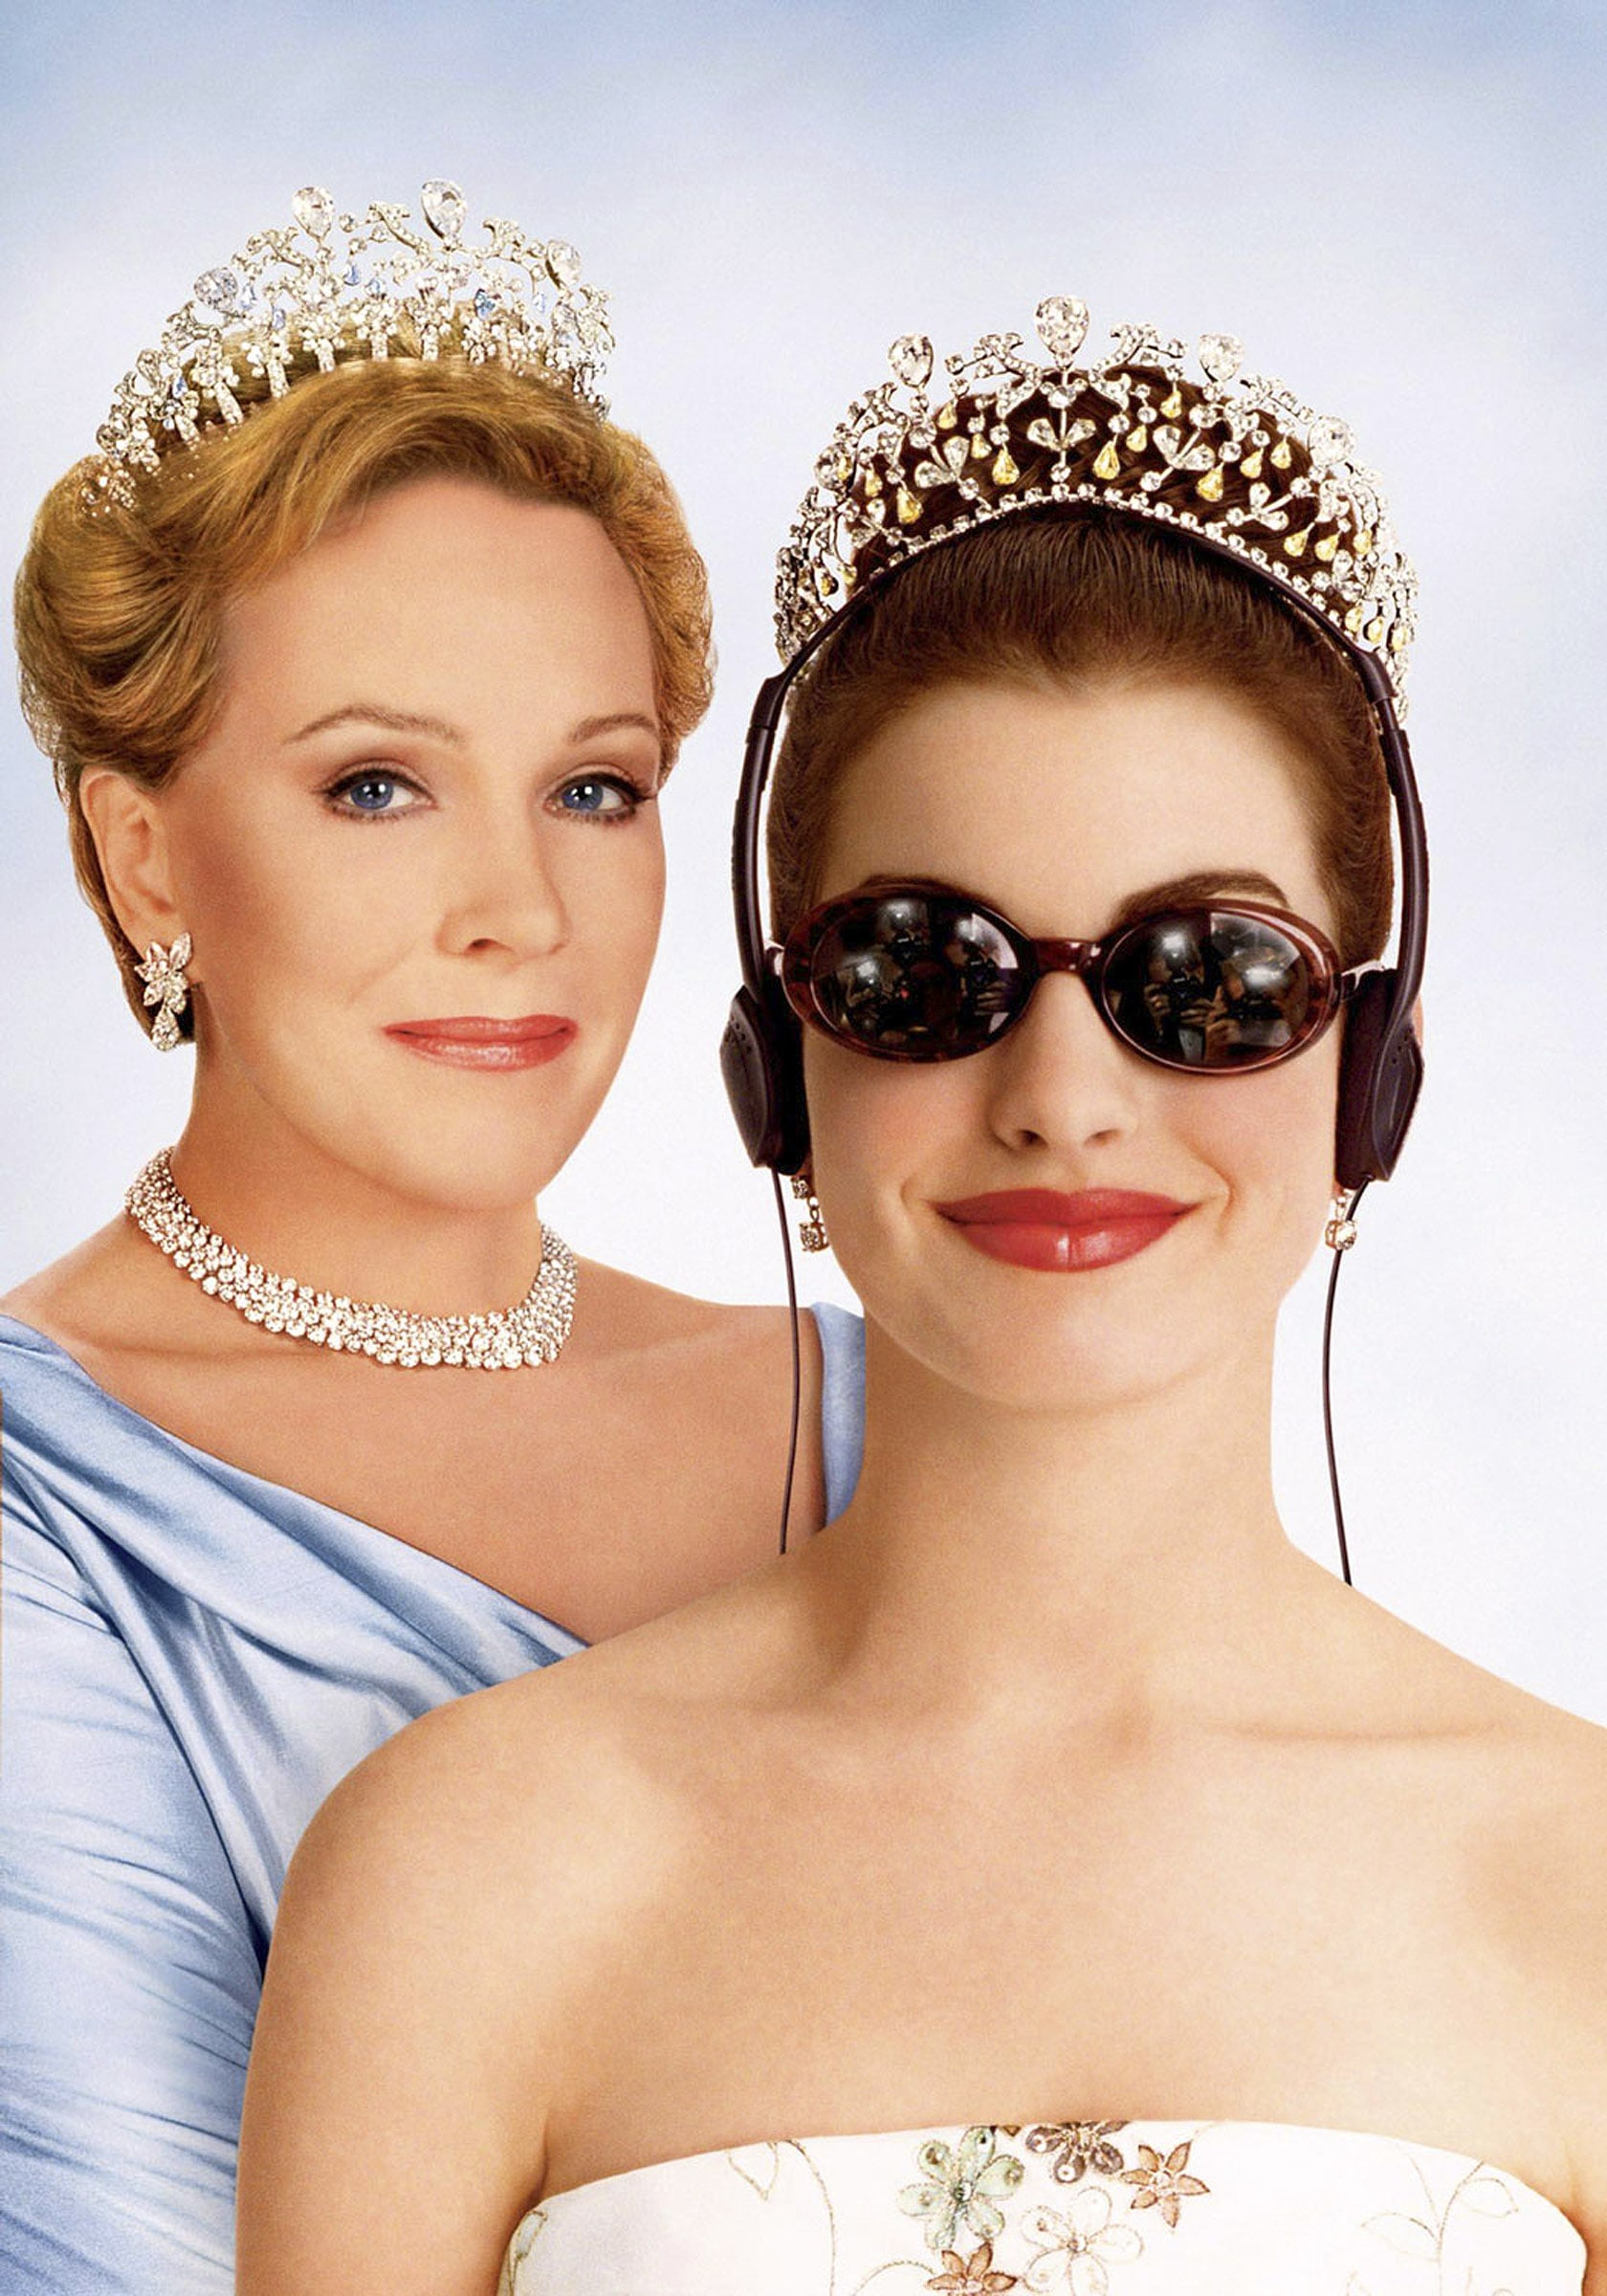 THE PRINCESS DIARIES, Julie Andrews, Anne Hathaway, 2001, (c) Walt Disney/courtesy Everett Collection